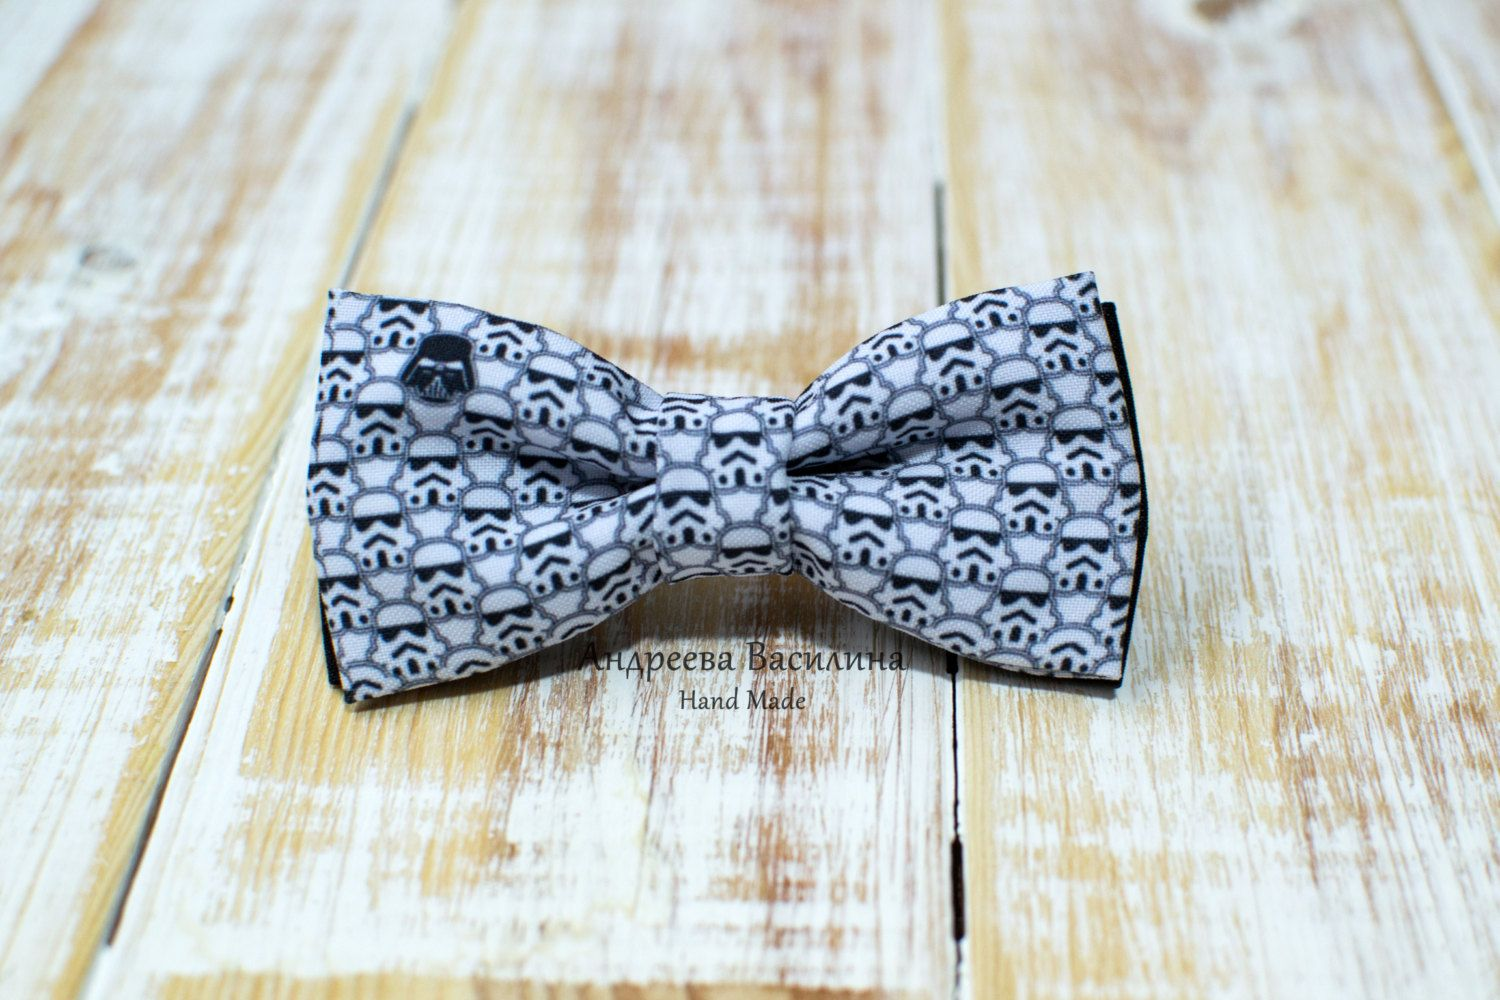 Bow tie Star Wars by Magicfabricbag on Etsy